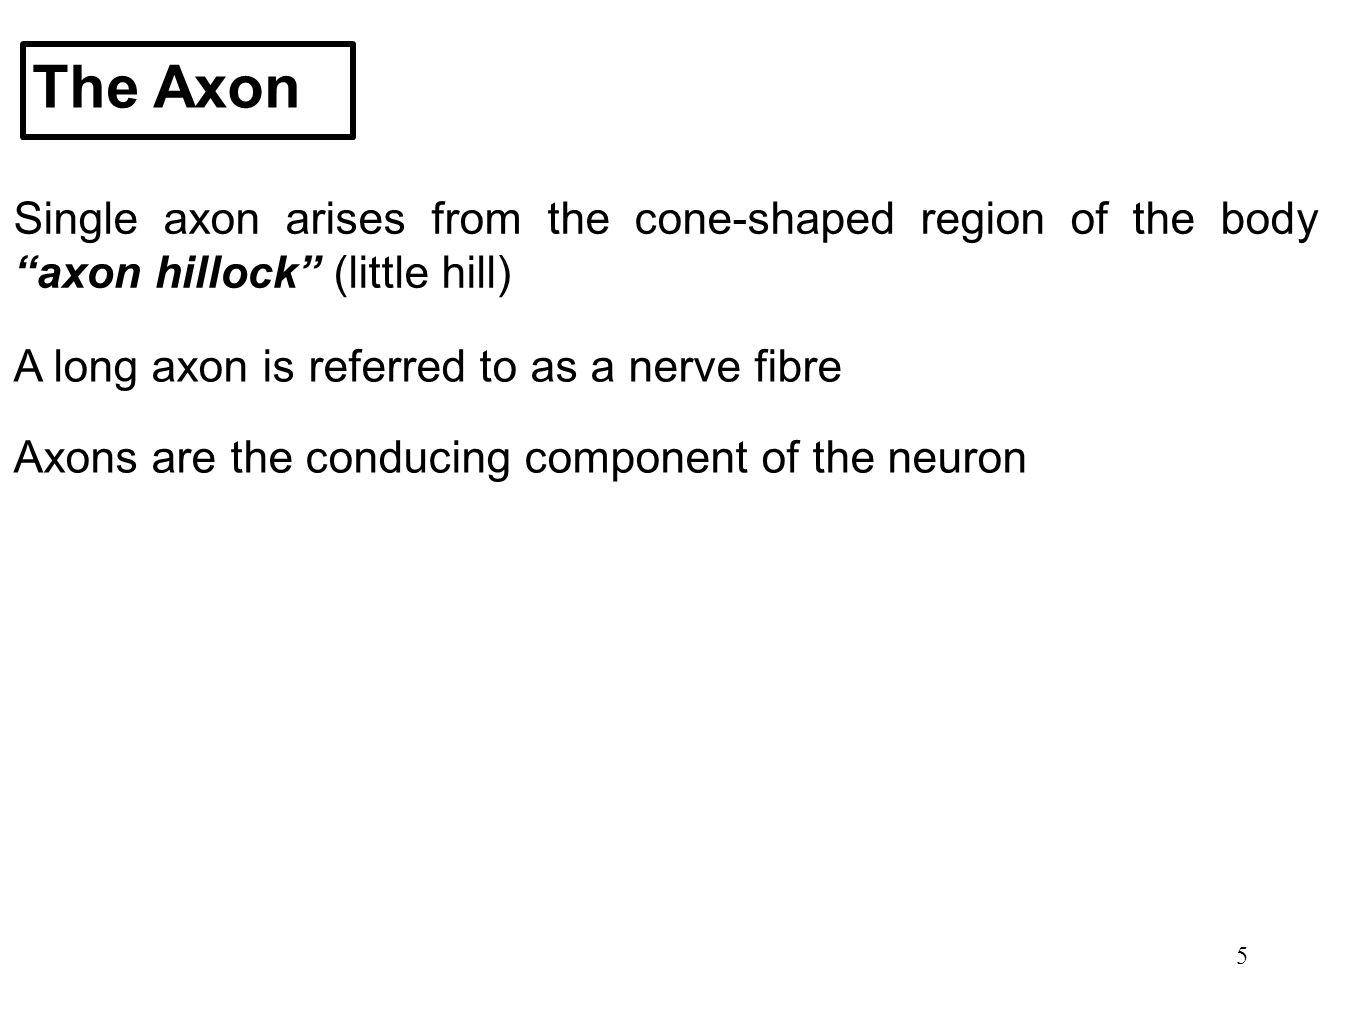 The Axon Single axon arises from the cone-shaped region of the body axon hillock (little hill) A long axon is referred to as a nerve fibre.